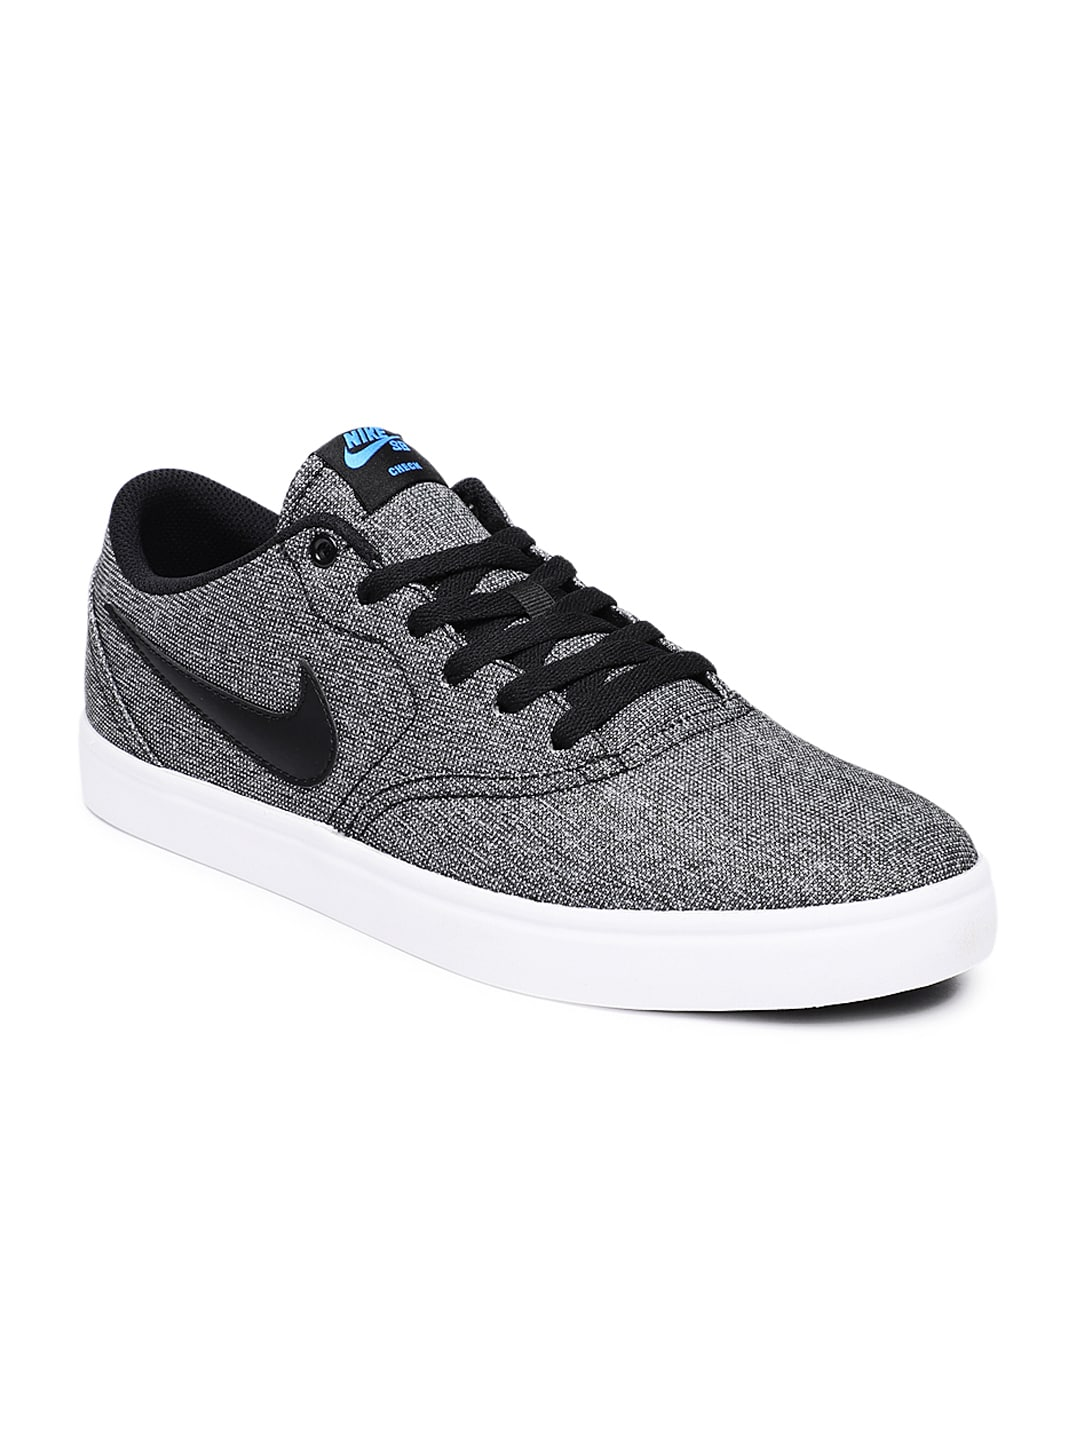 7e66a7035783 Nike Sb Shoes - Buy Nike Sb Shoes online in India